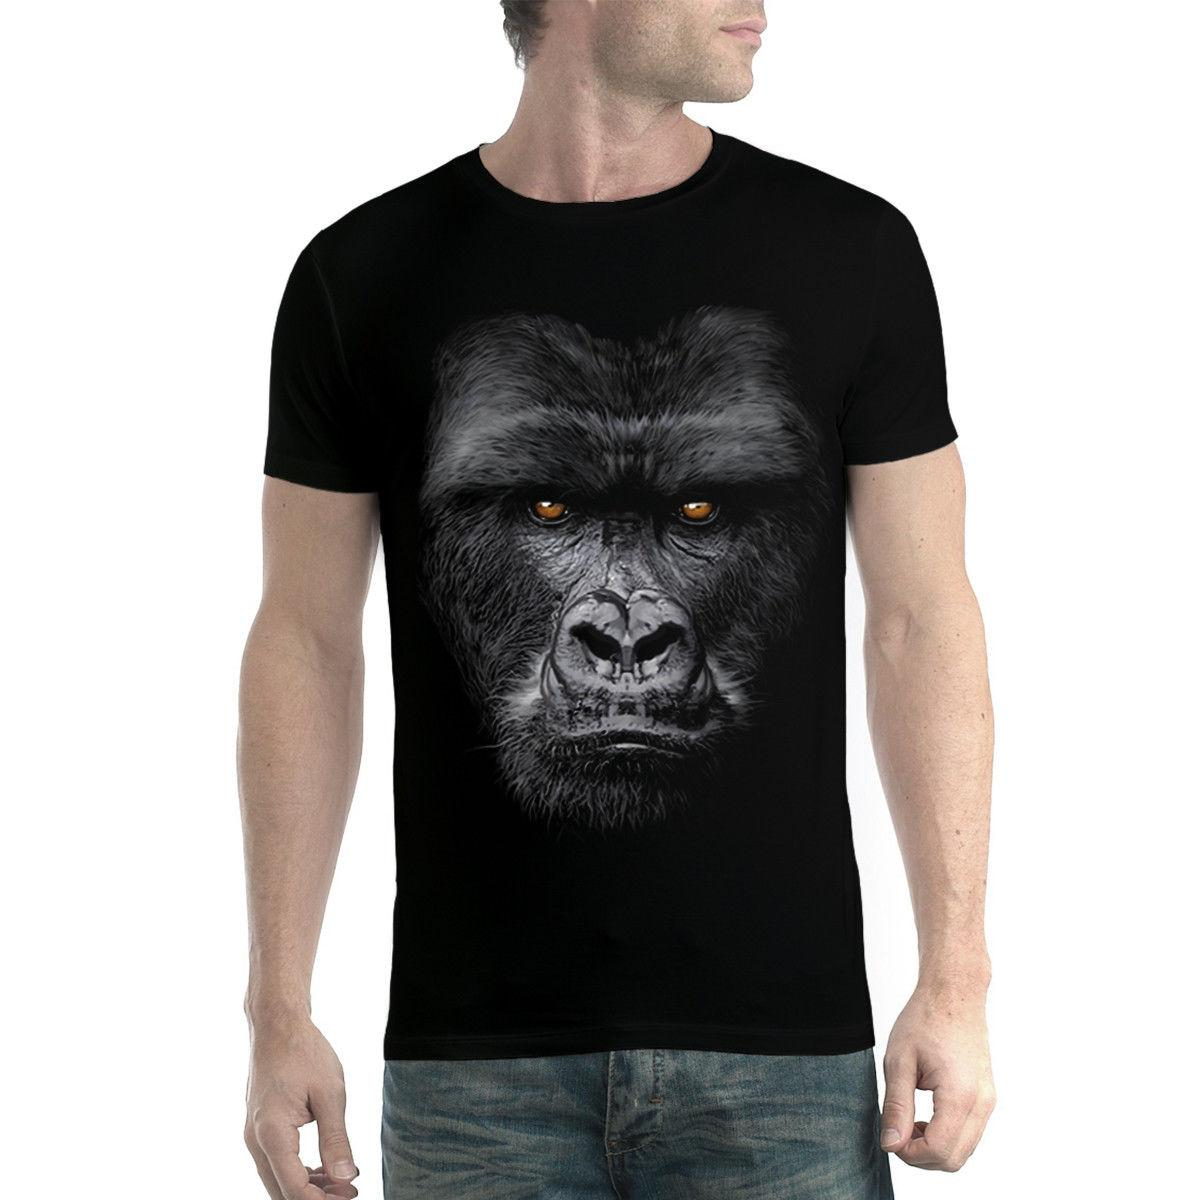 Gorilla Face Ape Mens T-shirt XS-5XL Funny free shipping Unisex Casual Tshirt